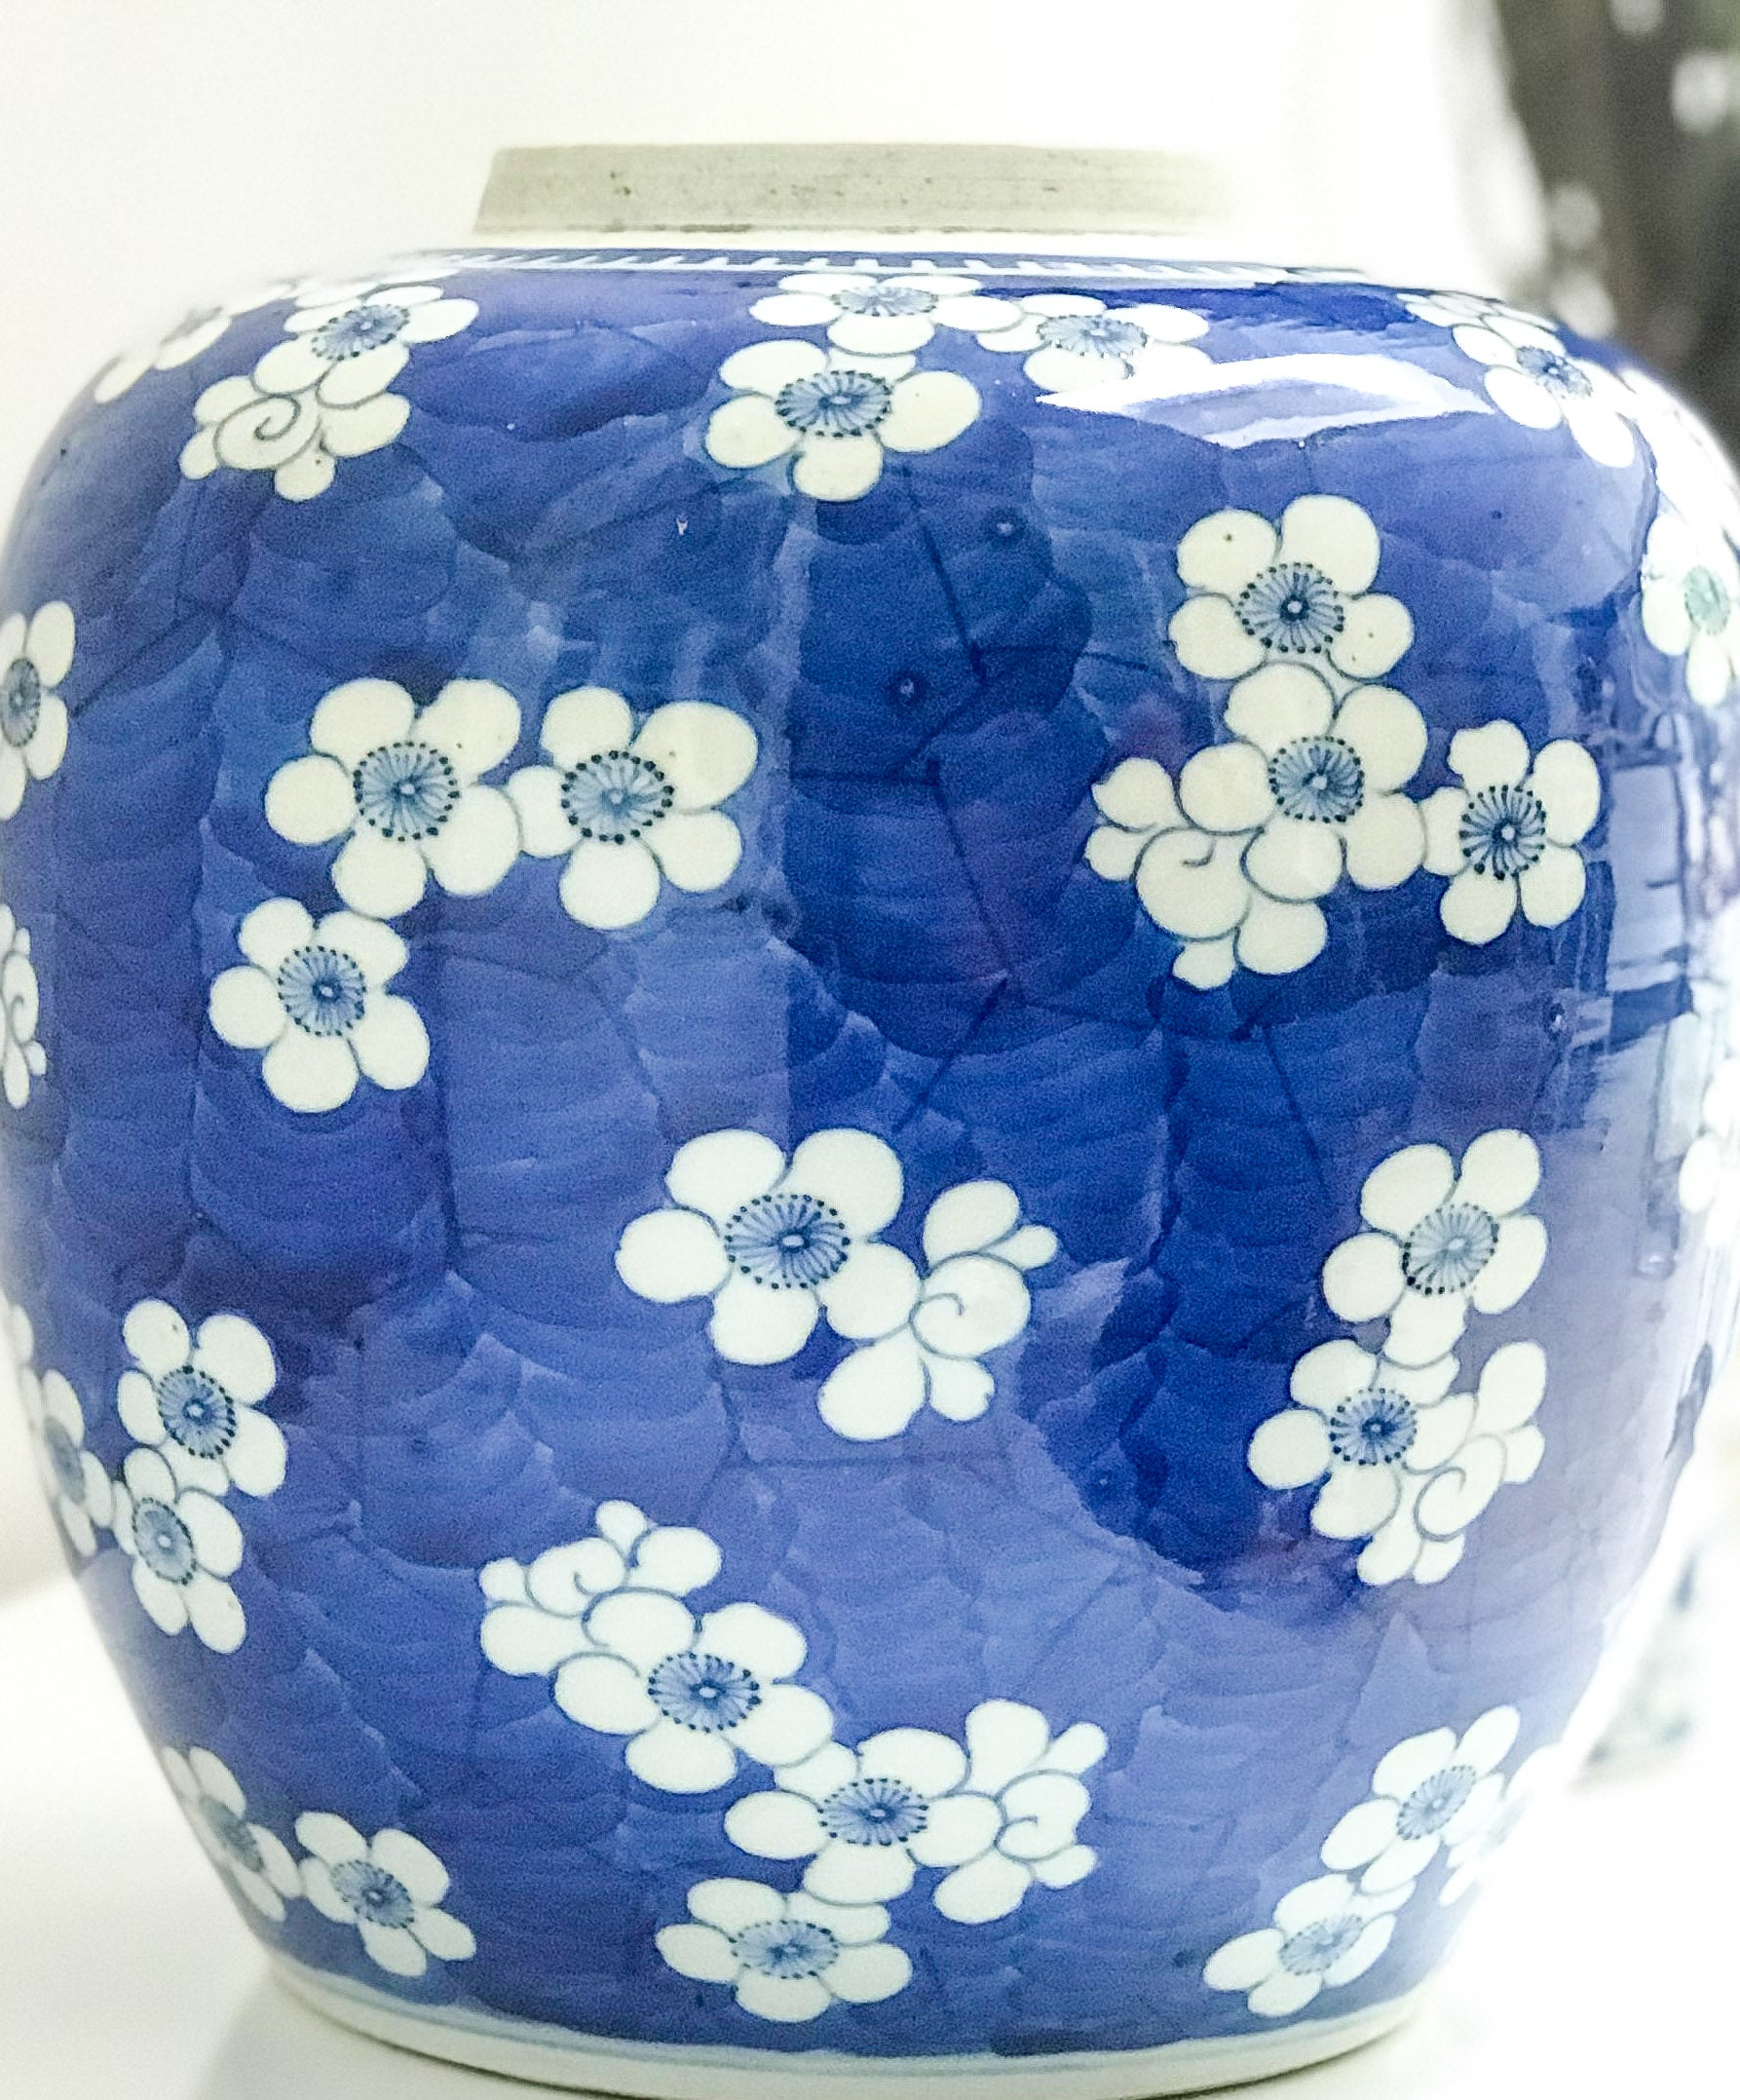 Blue & White Porcelain Ginger Jar Decorated With Plum Tree Flowers.Circa 1900